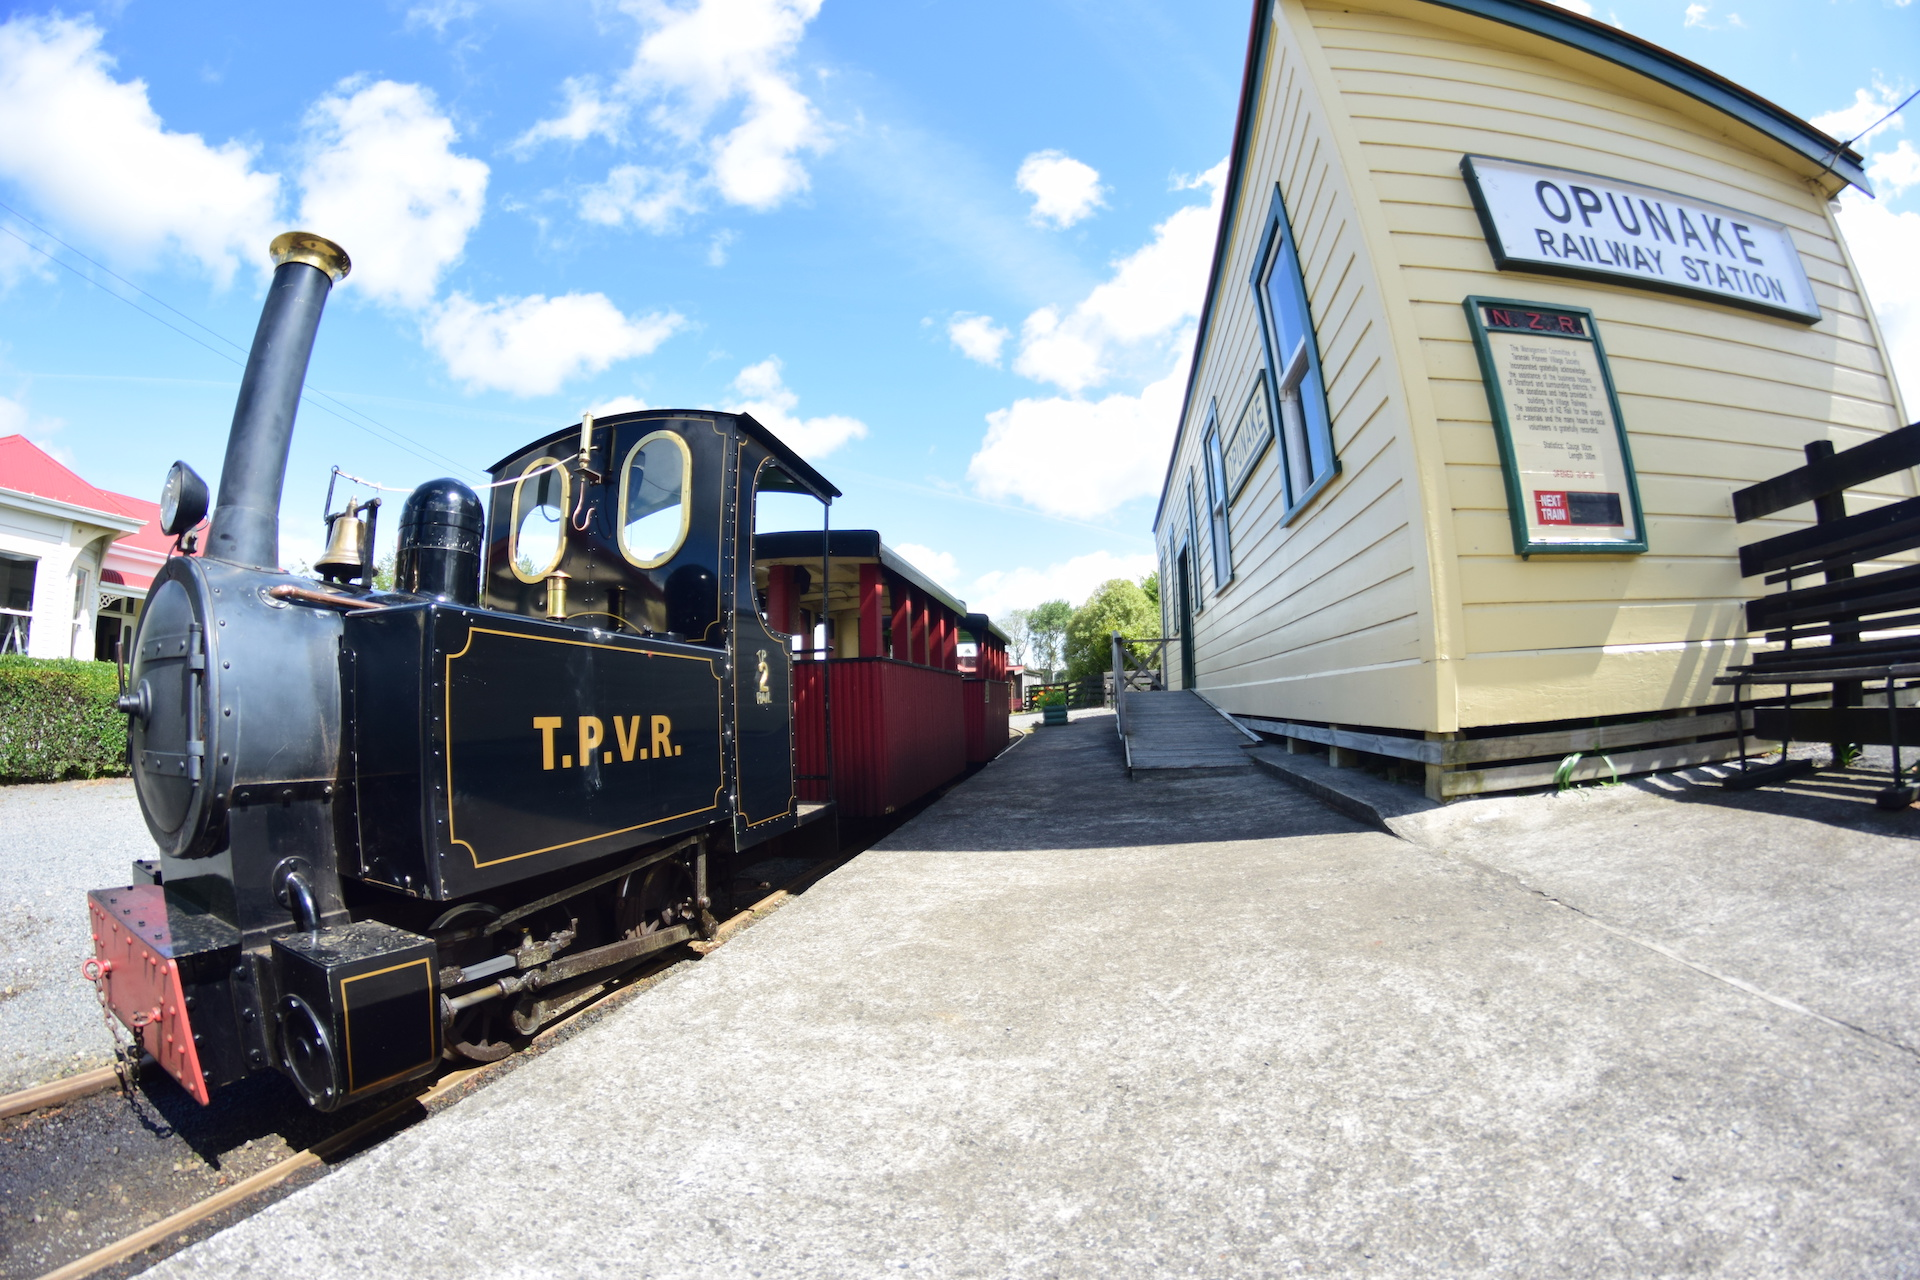 http://www.pioneervillage.co.nz/wp-content/uploads/2016/12/slider-train.jpg